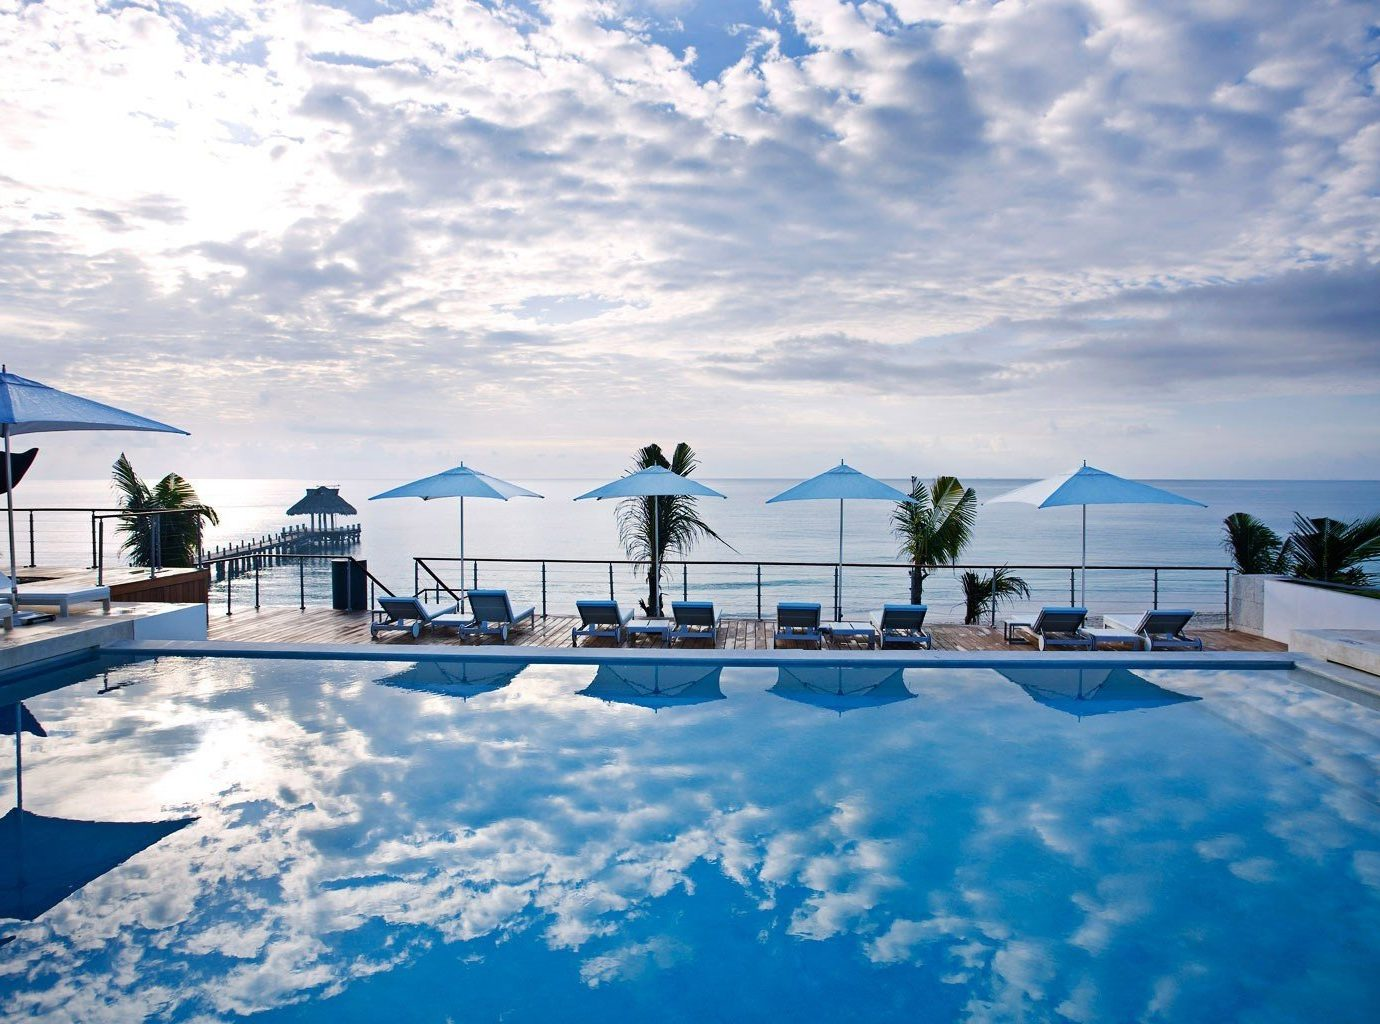 Hotels sky outdoor snow swimming pool blue Resort vacation estate Nature Sea clouds cloudy day